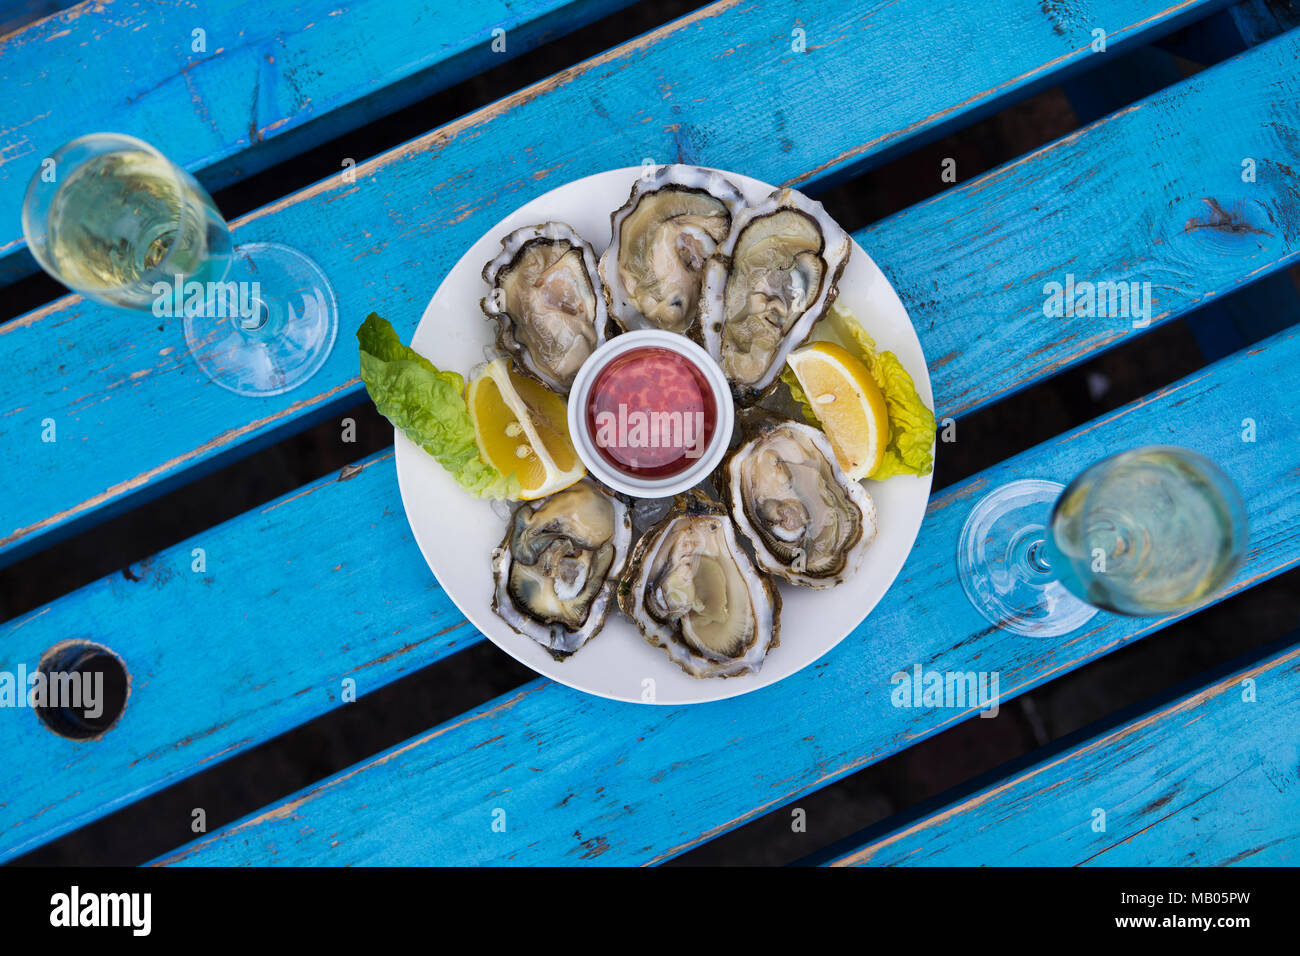 Oysters and champagne with lemon wedge and mignette dressing on white plate on blue distressed vintage table. - Stock Image